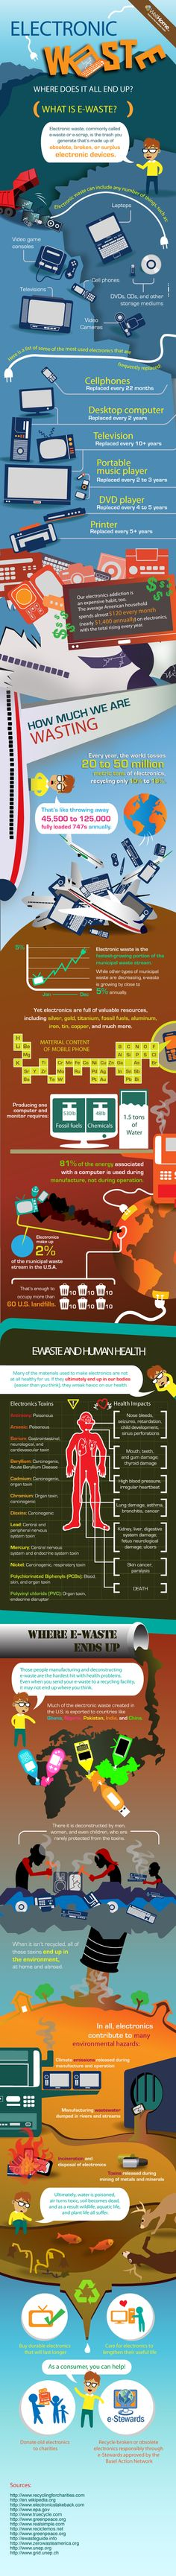 E-Waste – Infographic on http://www.bestinfographic.co.uk